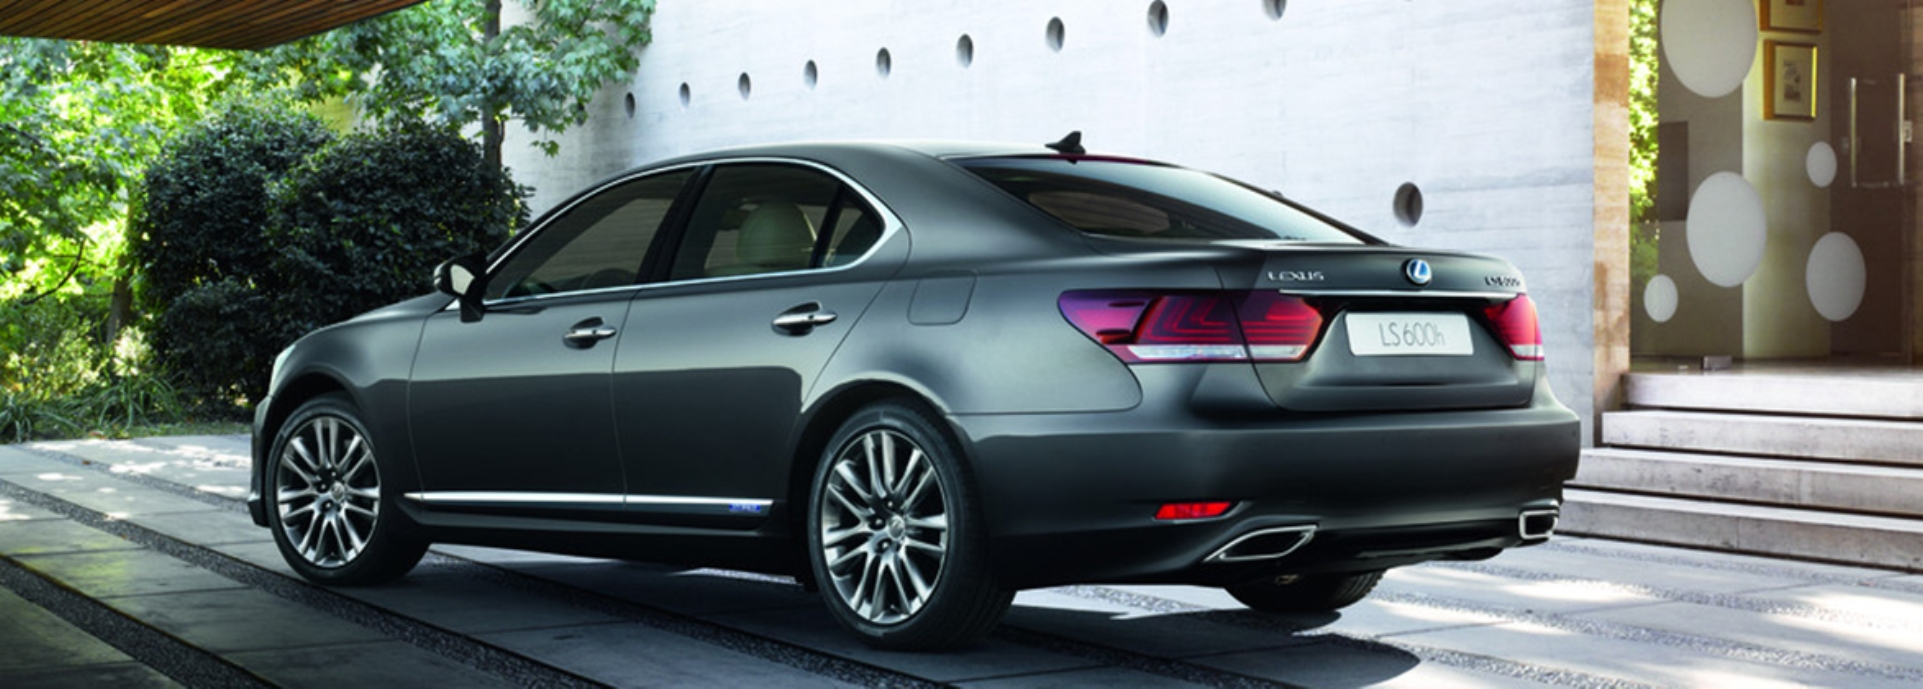 Used Lexus LS for Sale from Lexus Approved Pre-Owned